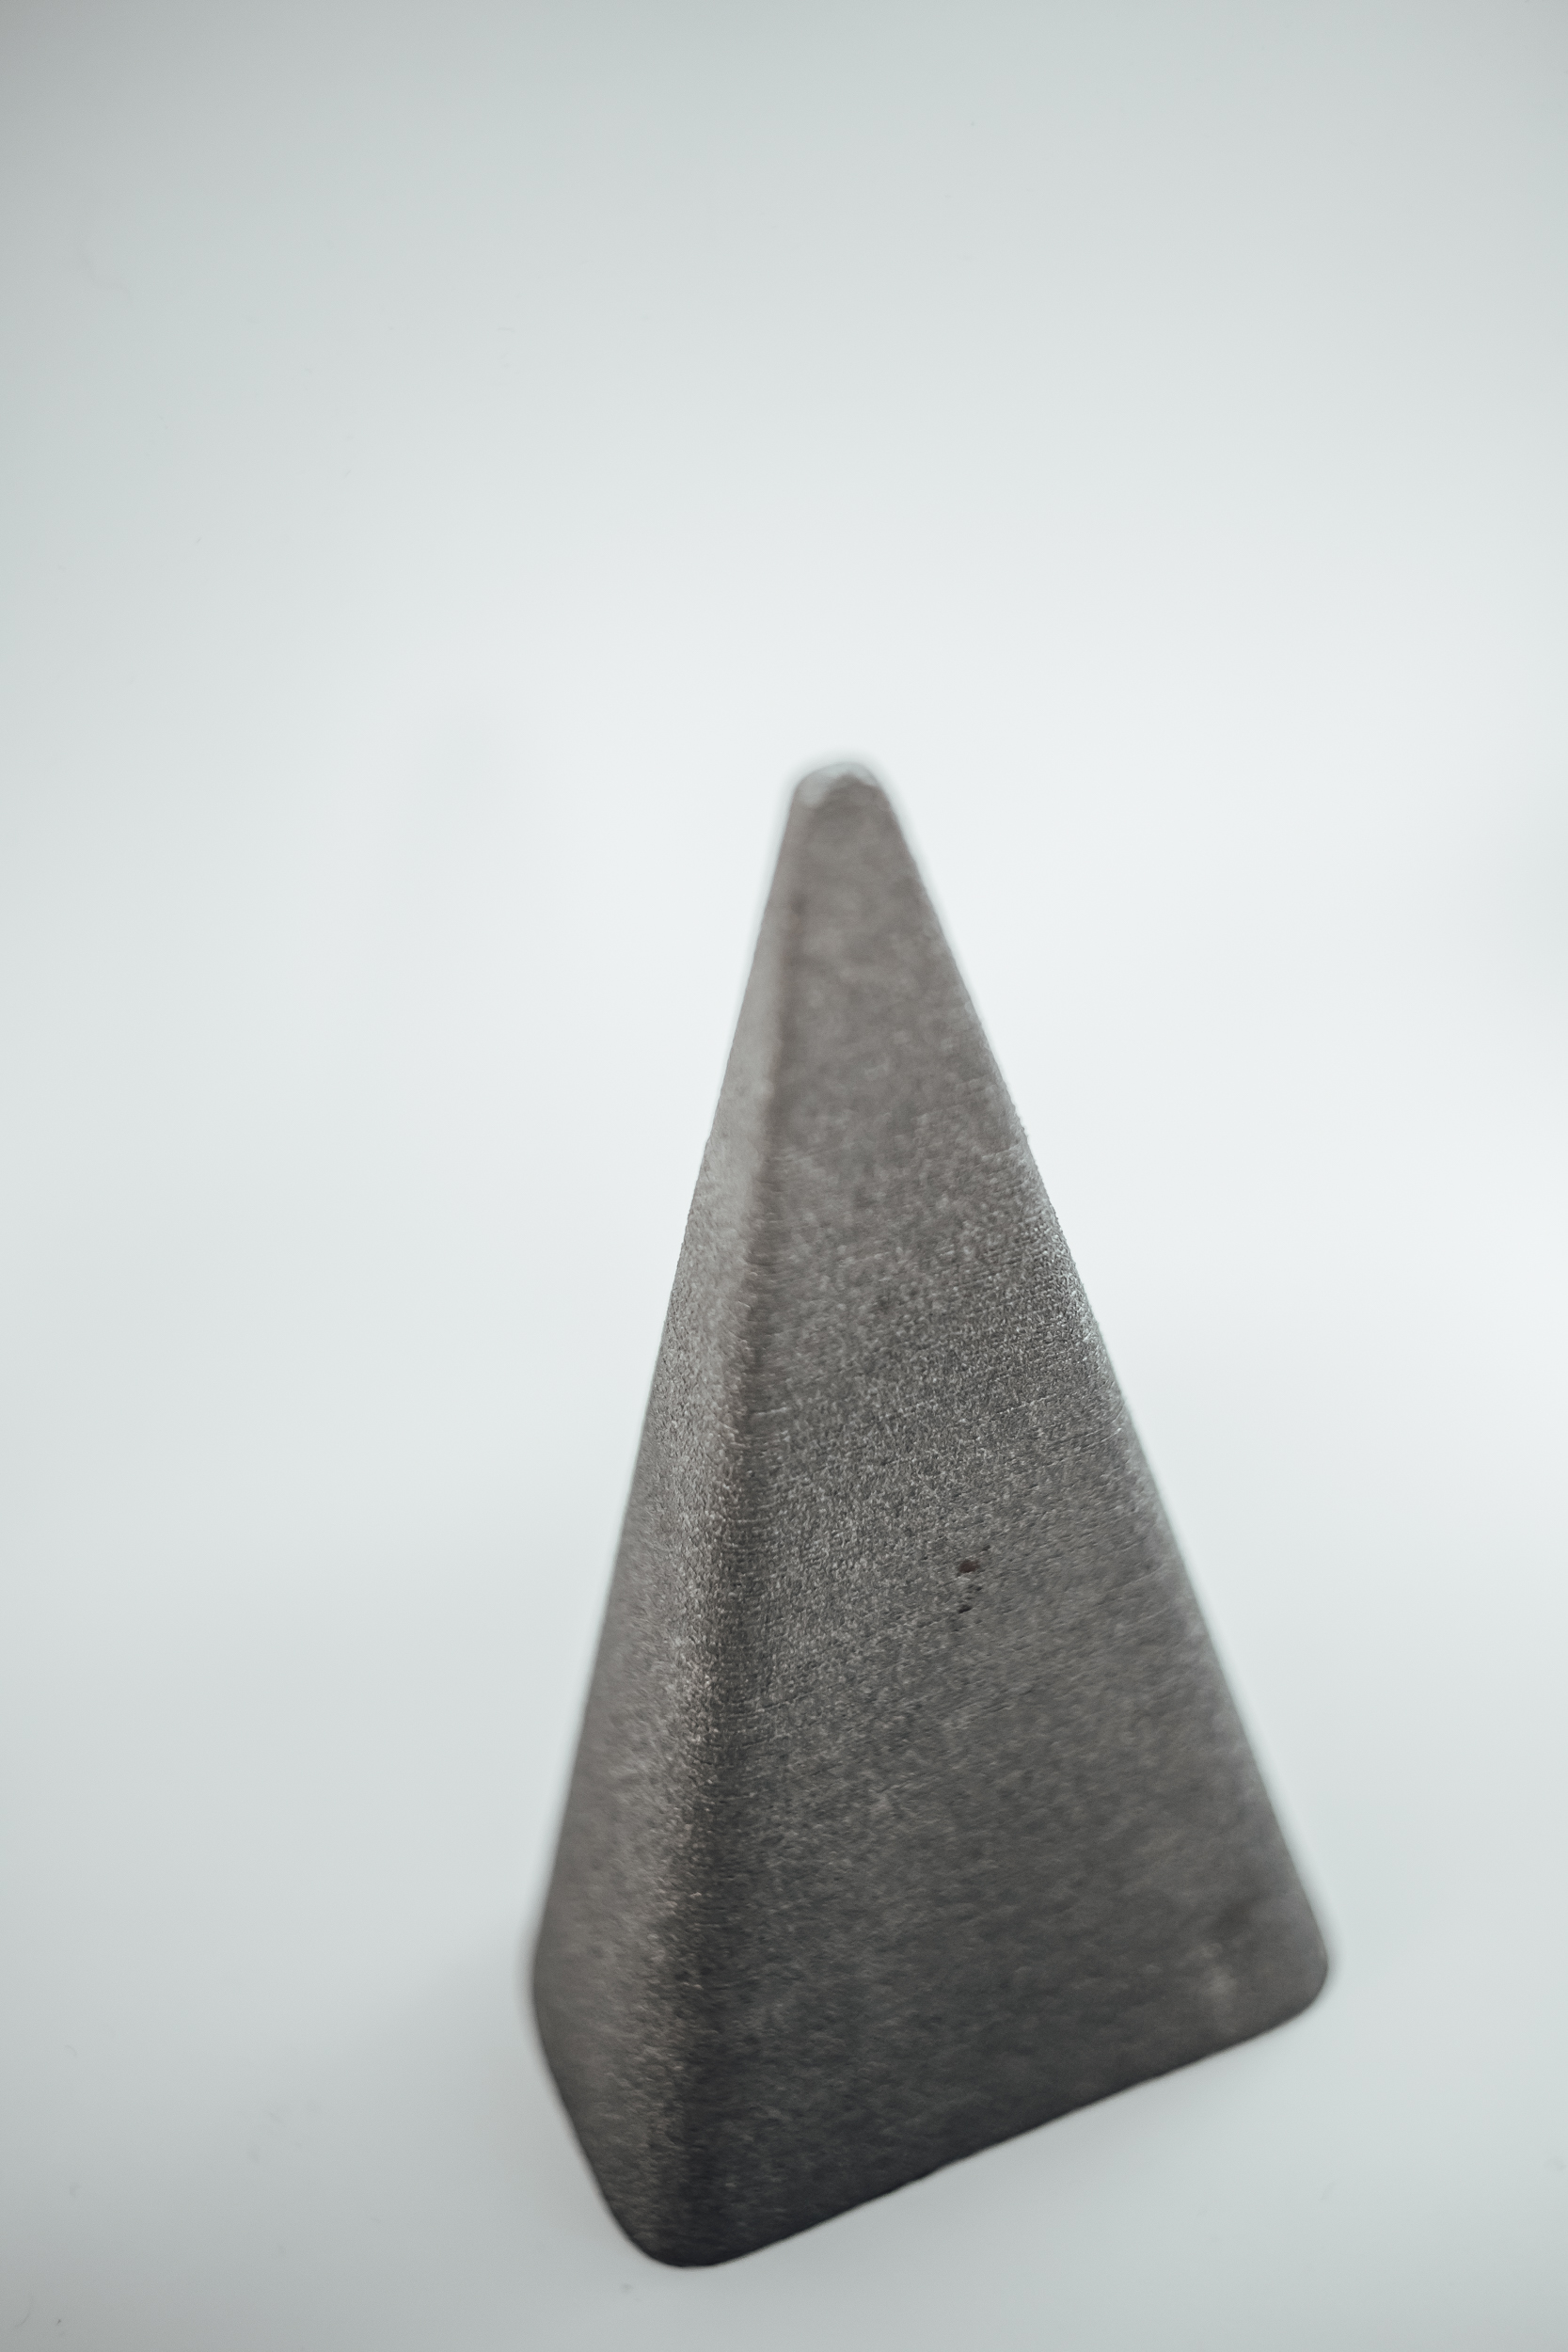 Artifact: Proof of concept nose cone (cover image)